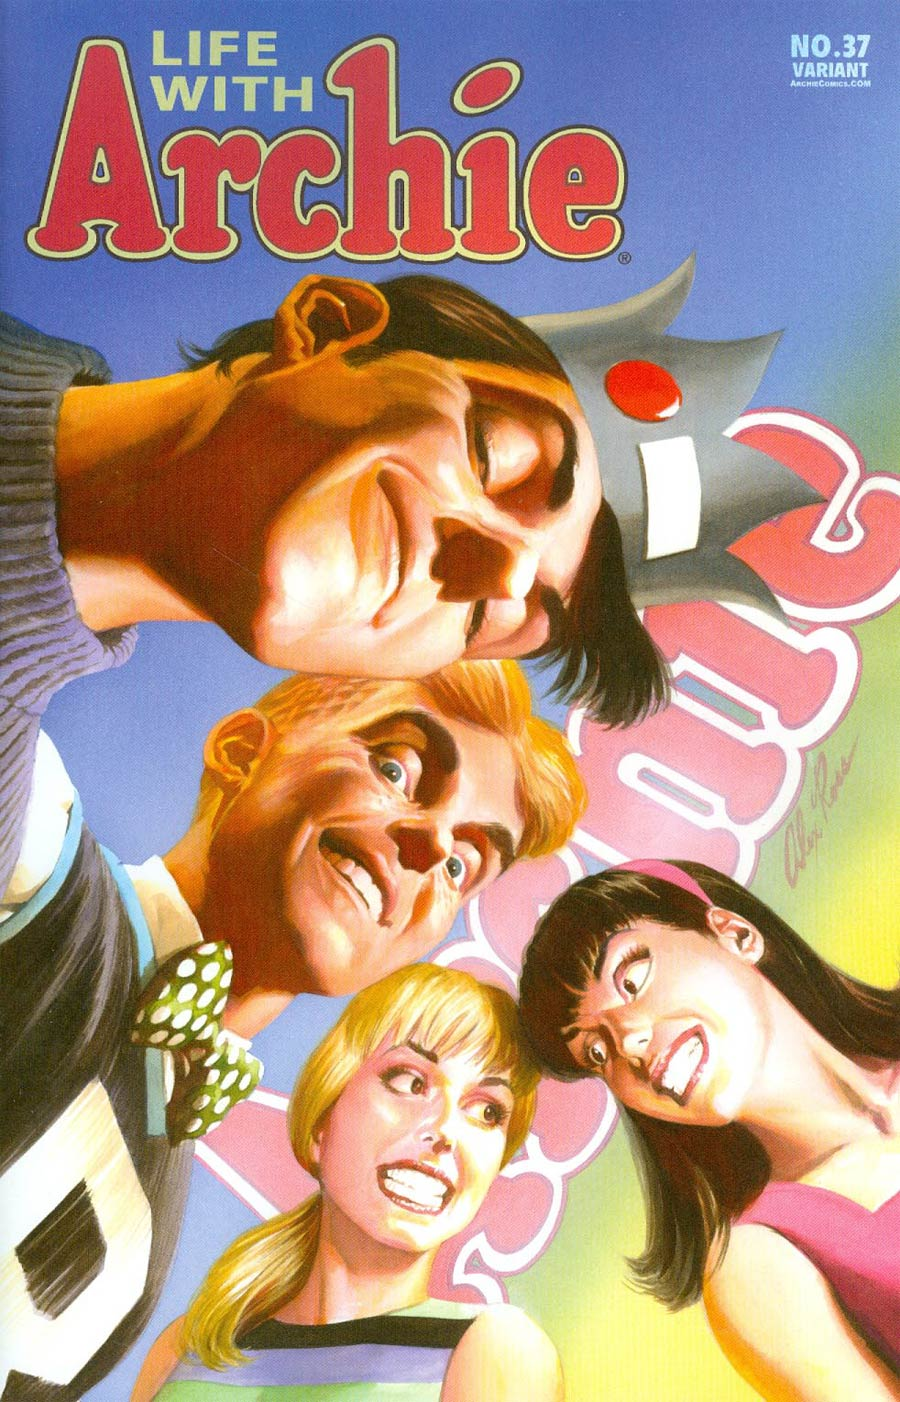 Life With Archie Vol 2 #37 Cover C Comic Format Alex Ross Cover